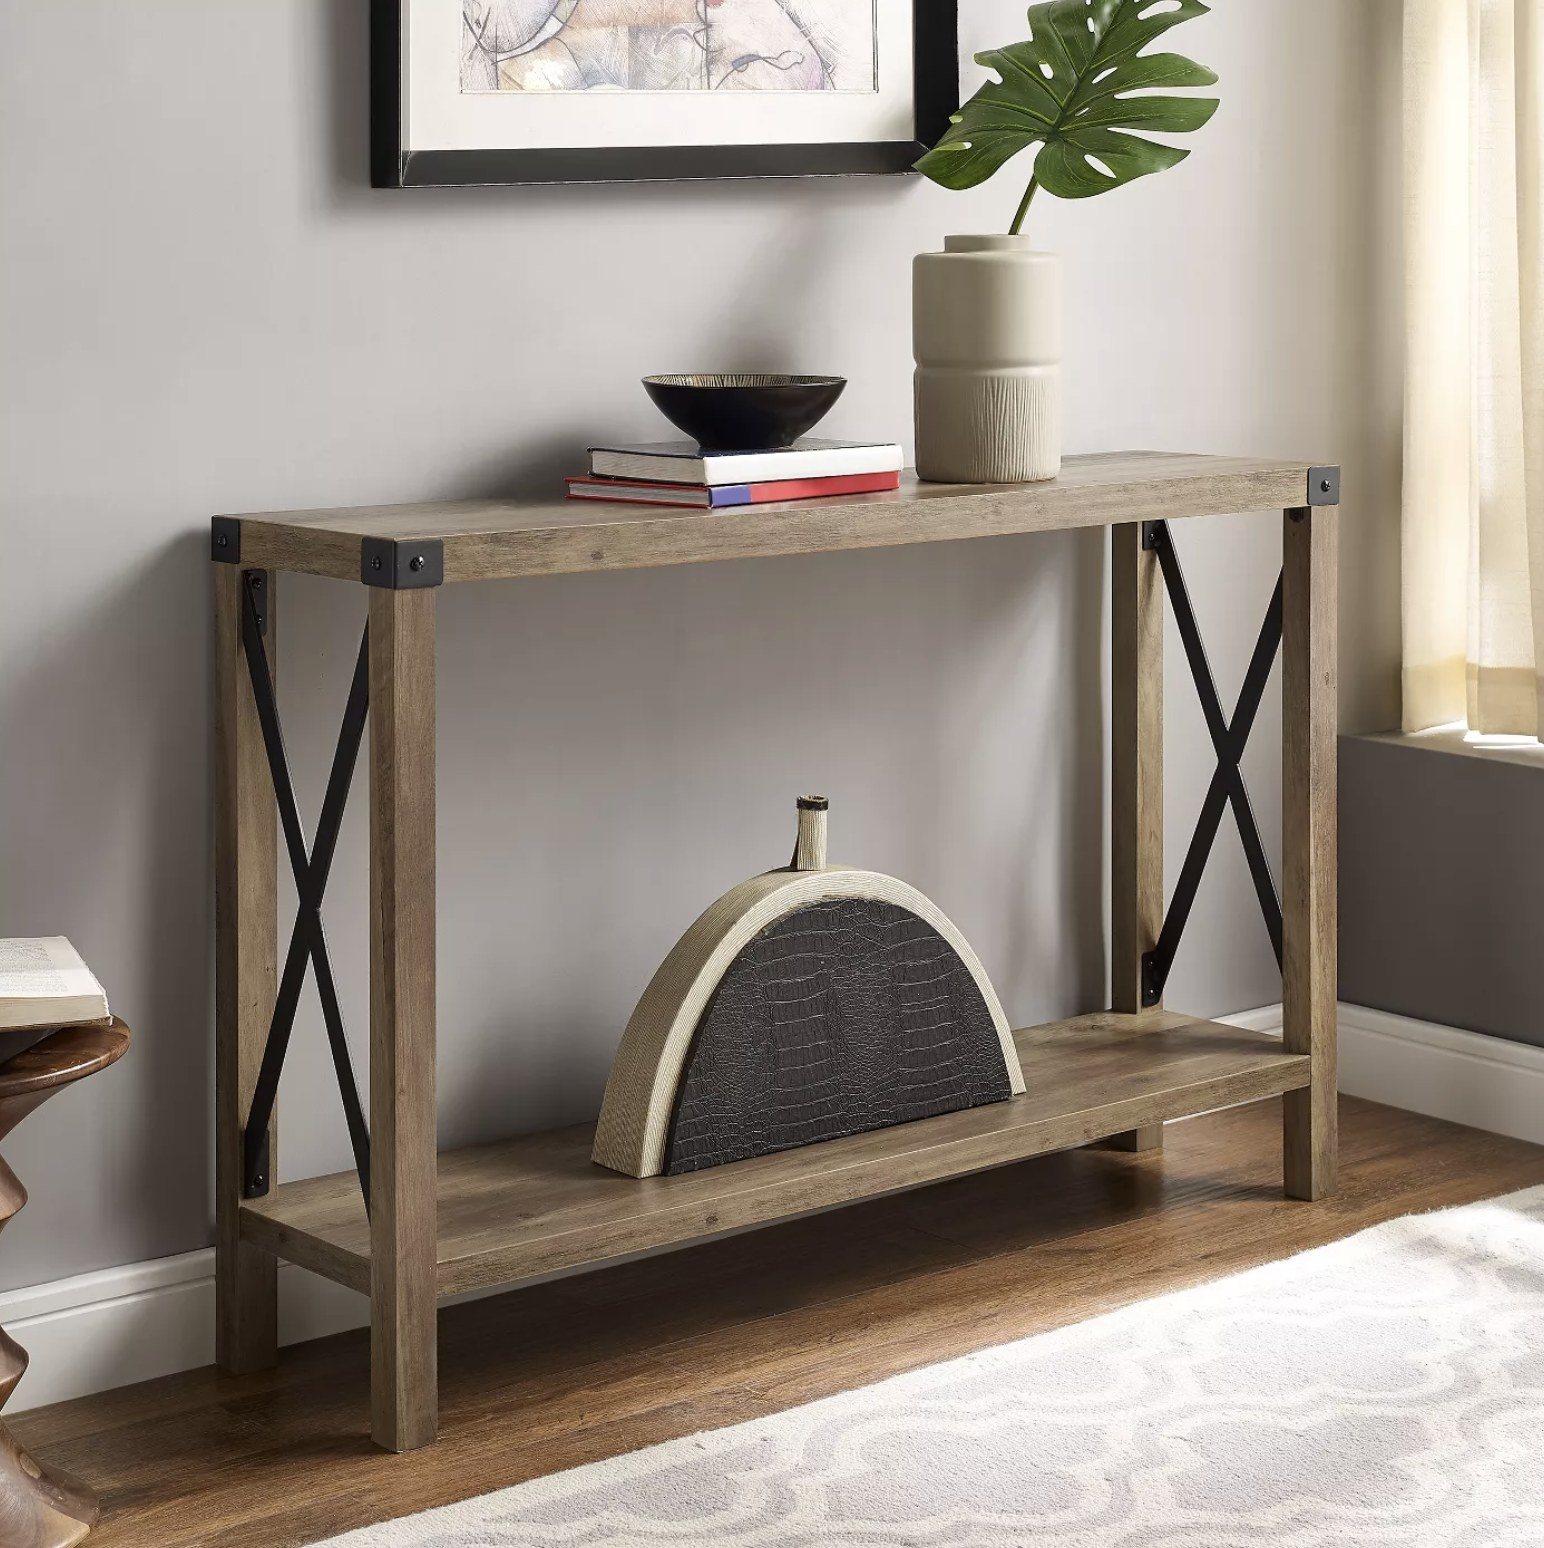 A light brown entryway table with metal accents sits in a living room